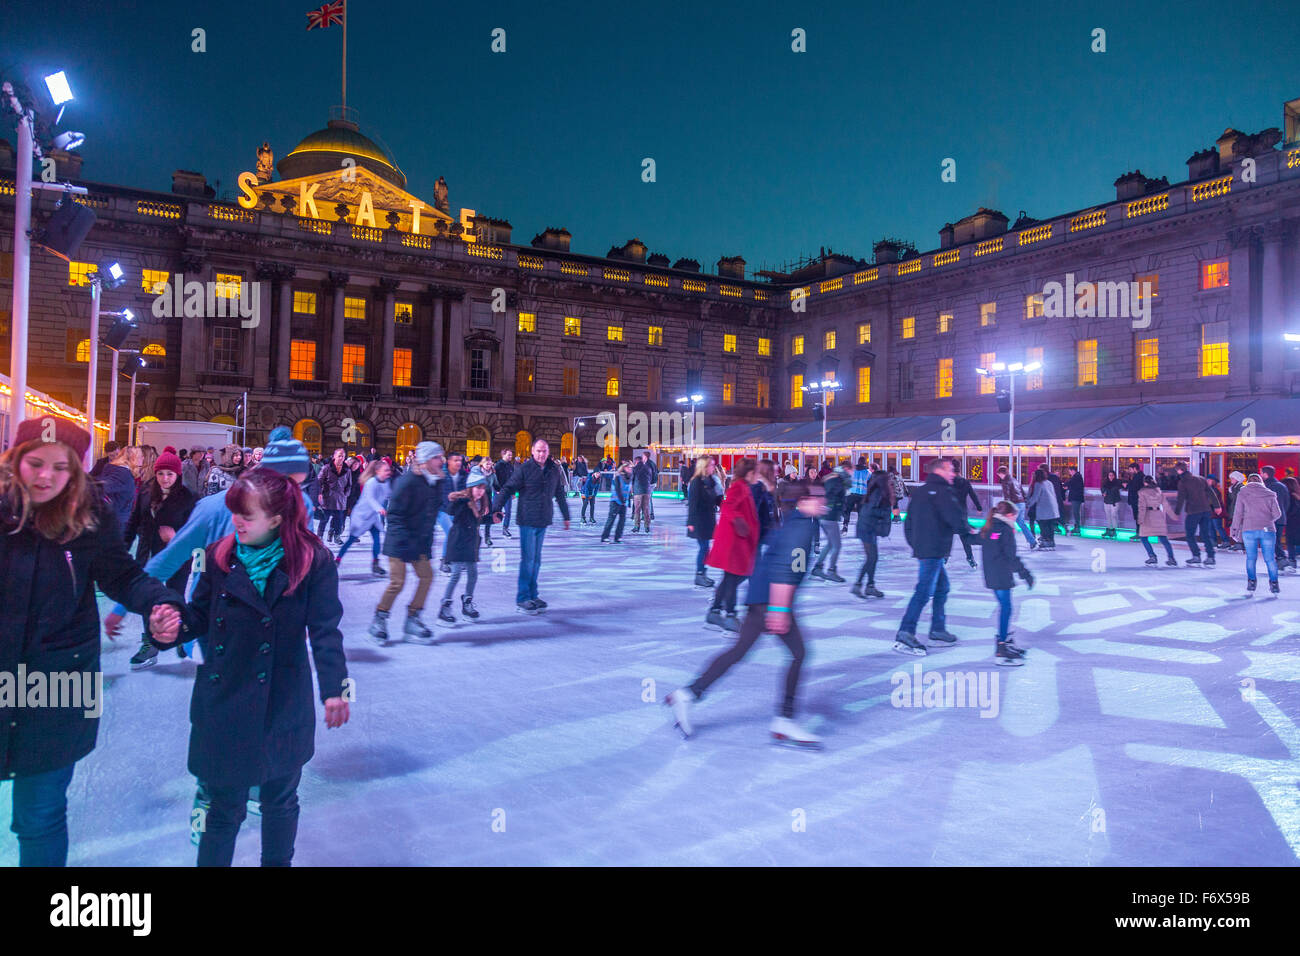 Somerset House Ice Rink at Xmas time - Stock Image